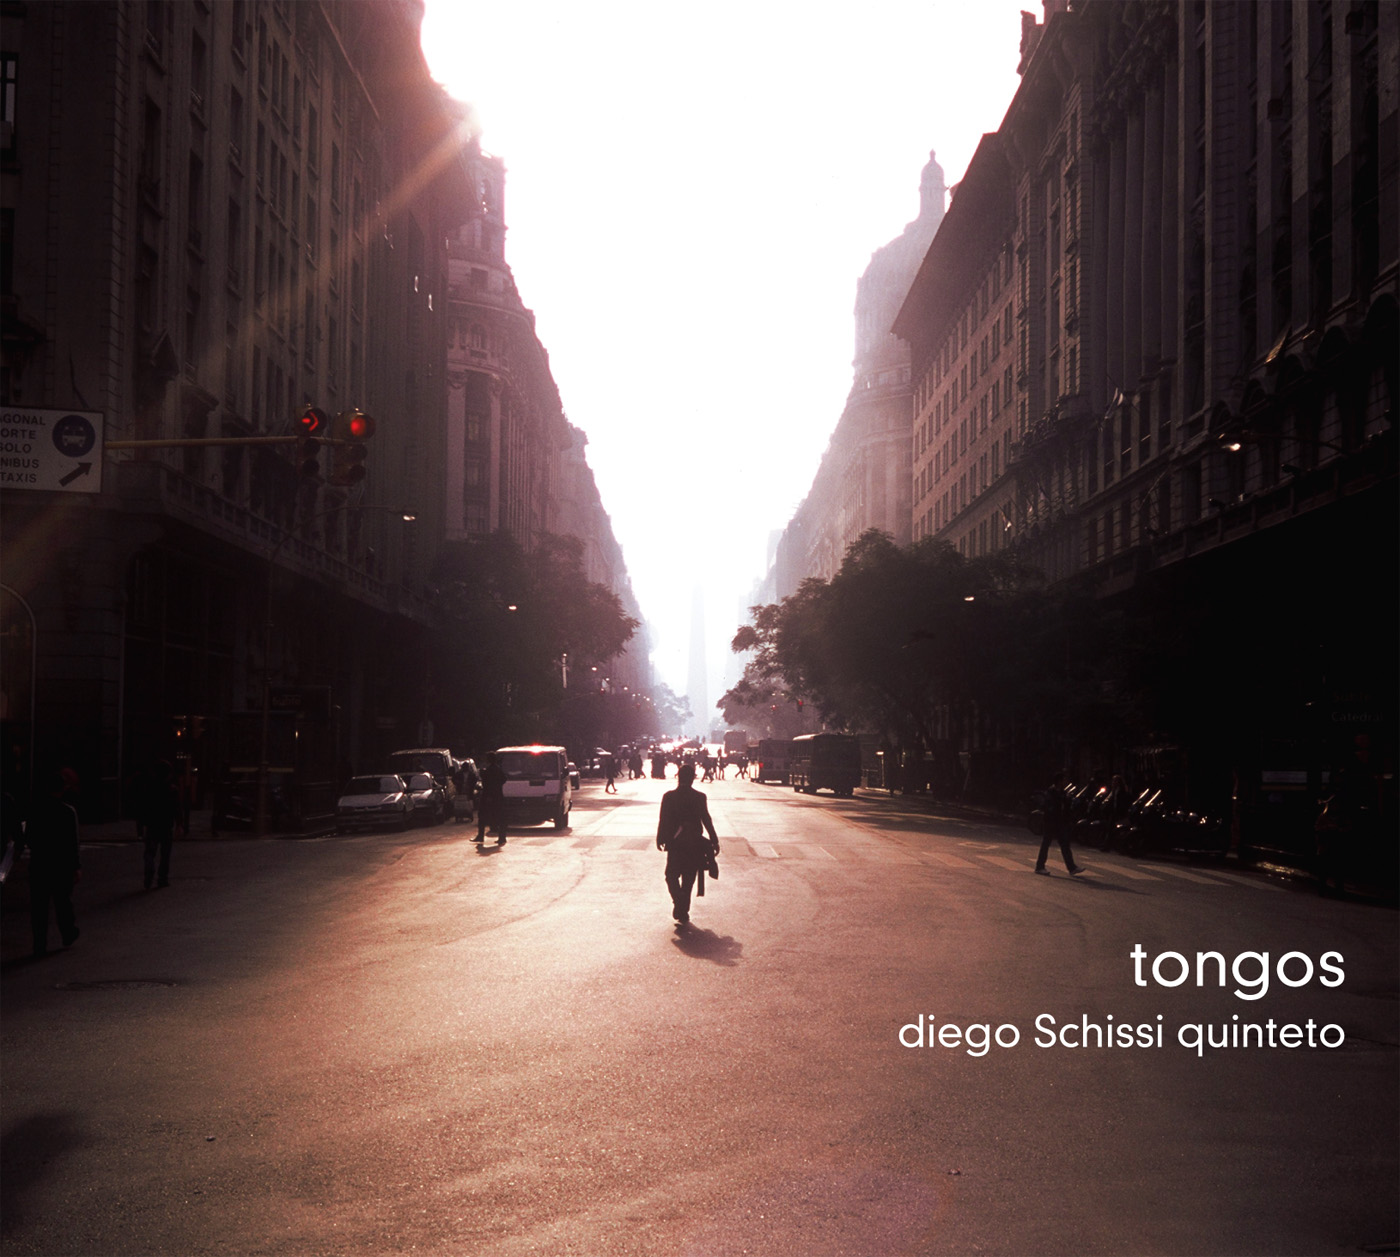 Tongos by Diego Schissi cover